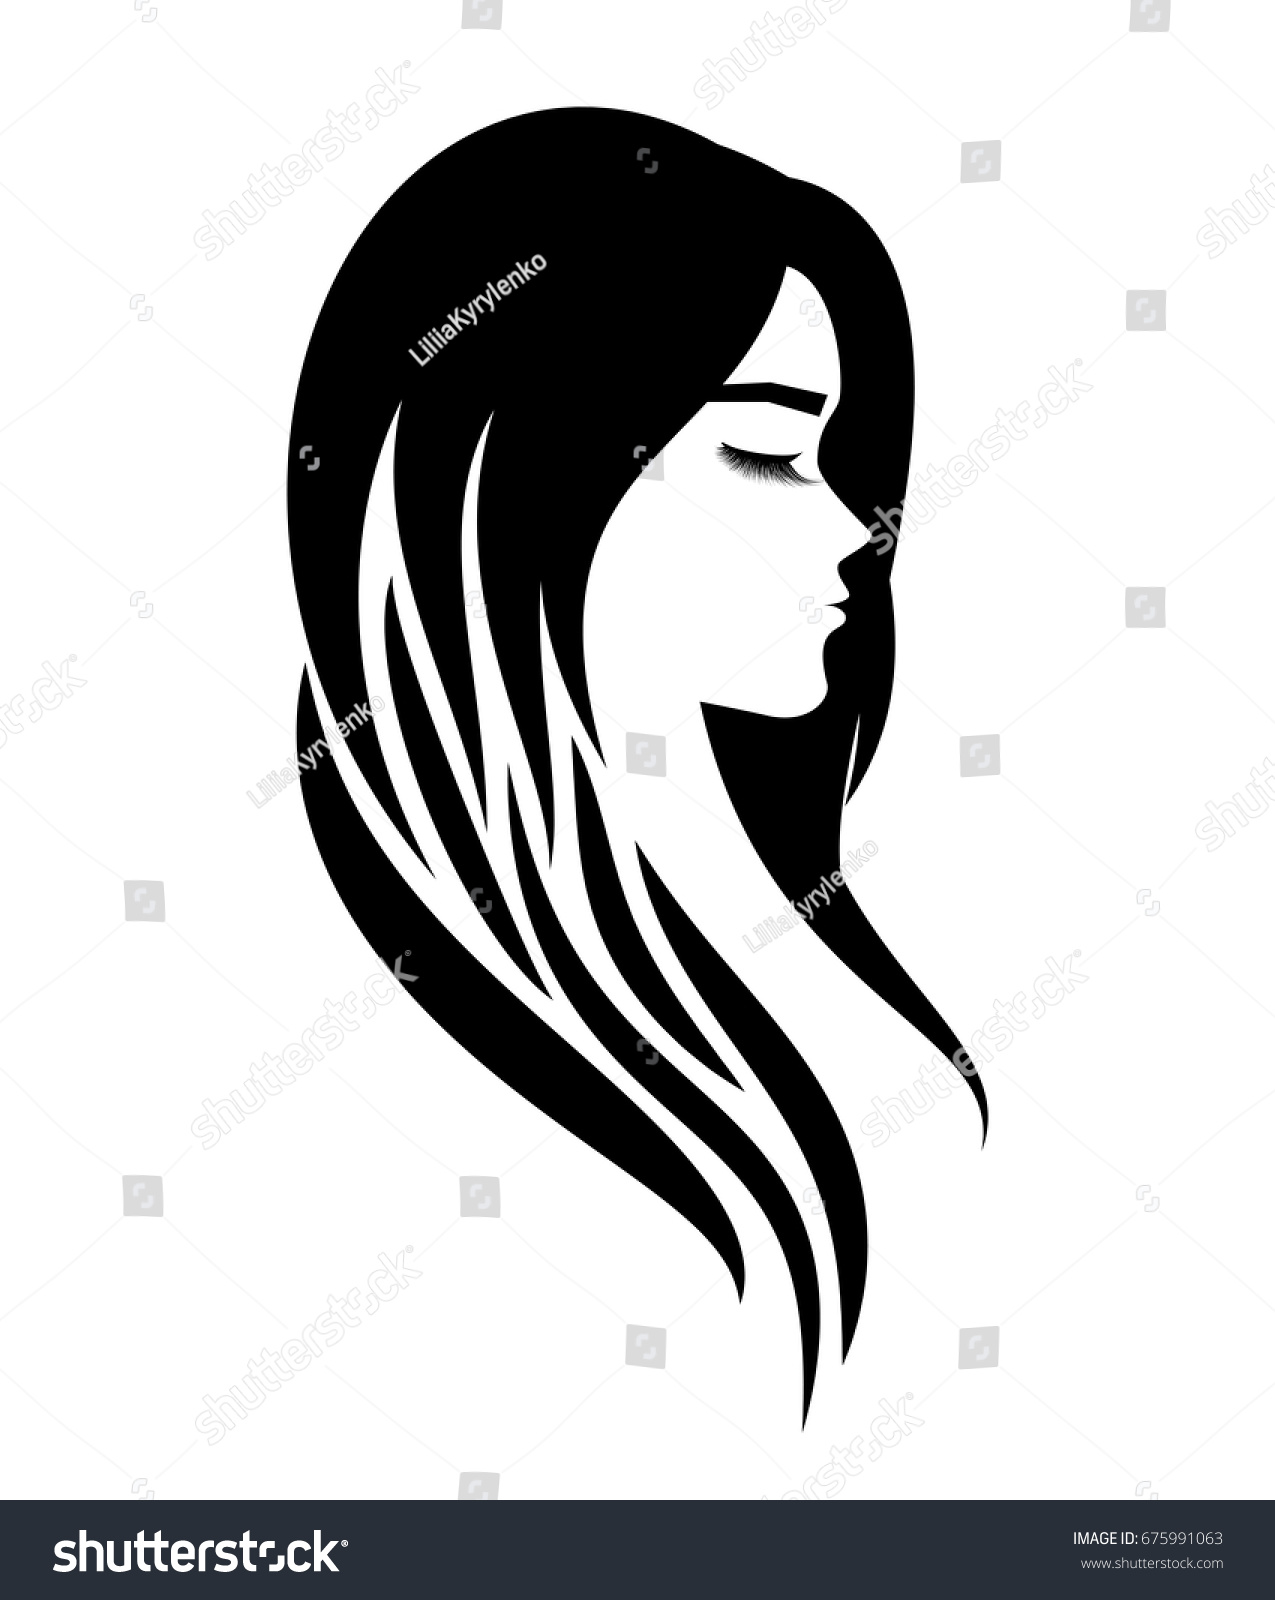 Logo For A Beauty Salon Or Procedures For Hair Extensions Or